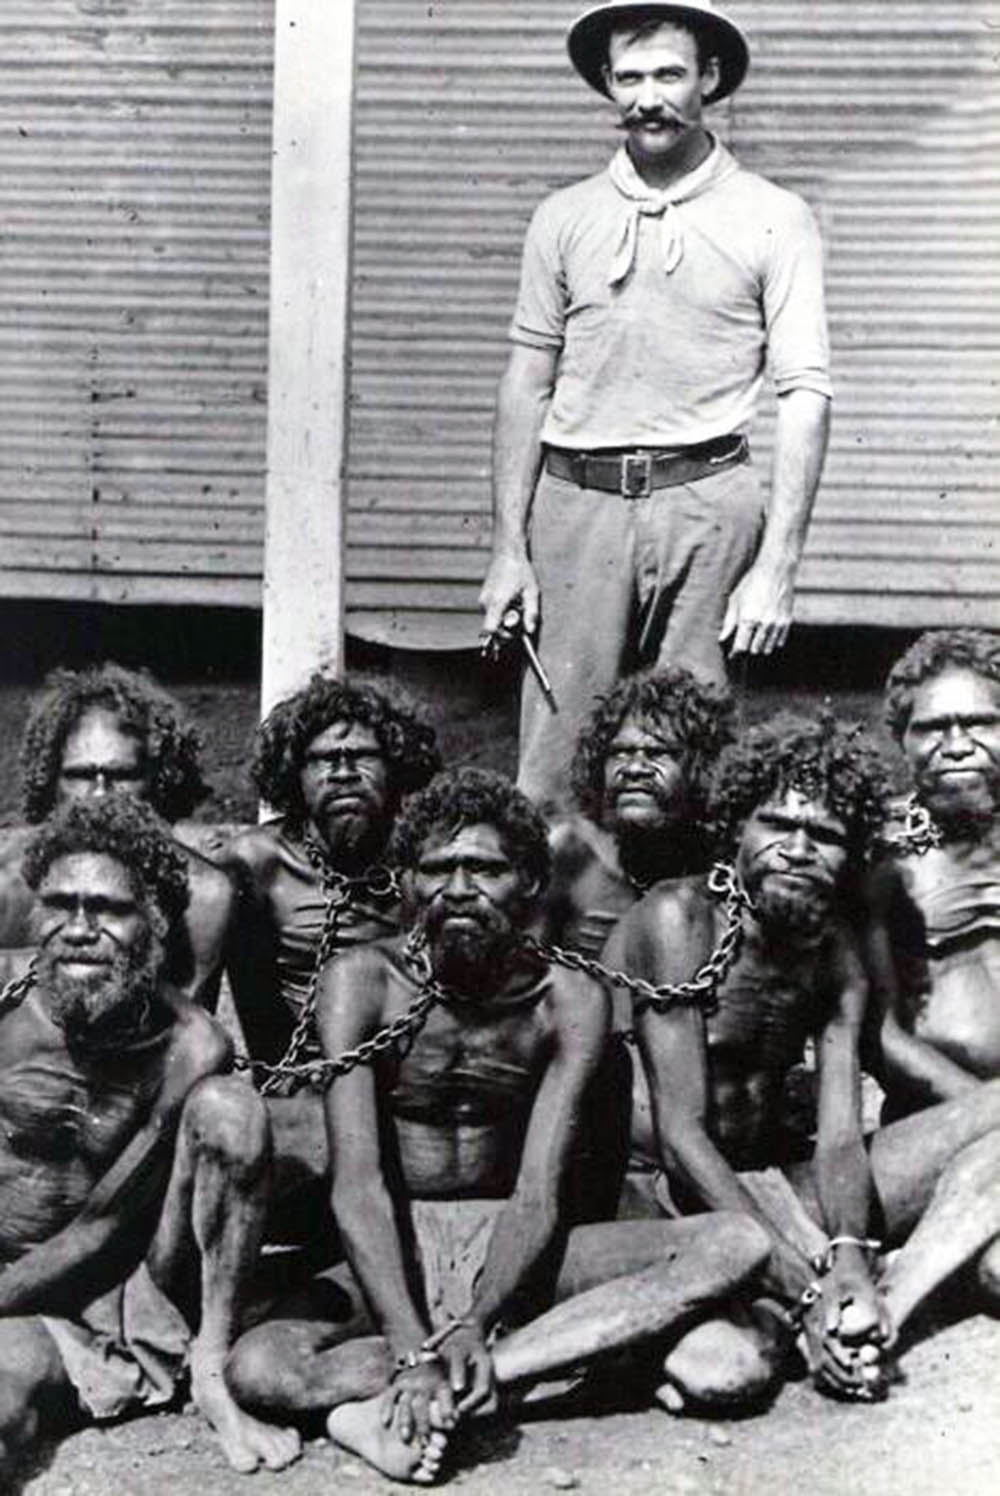 Australian Aborigines in chains at Wyndham prison, 1902